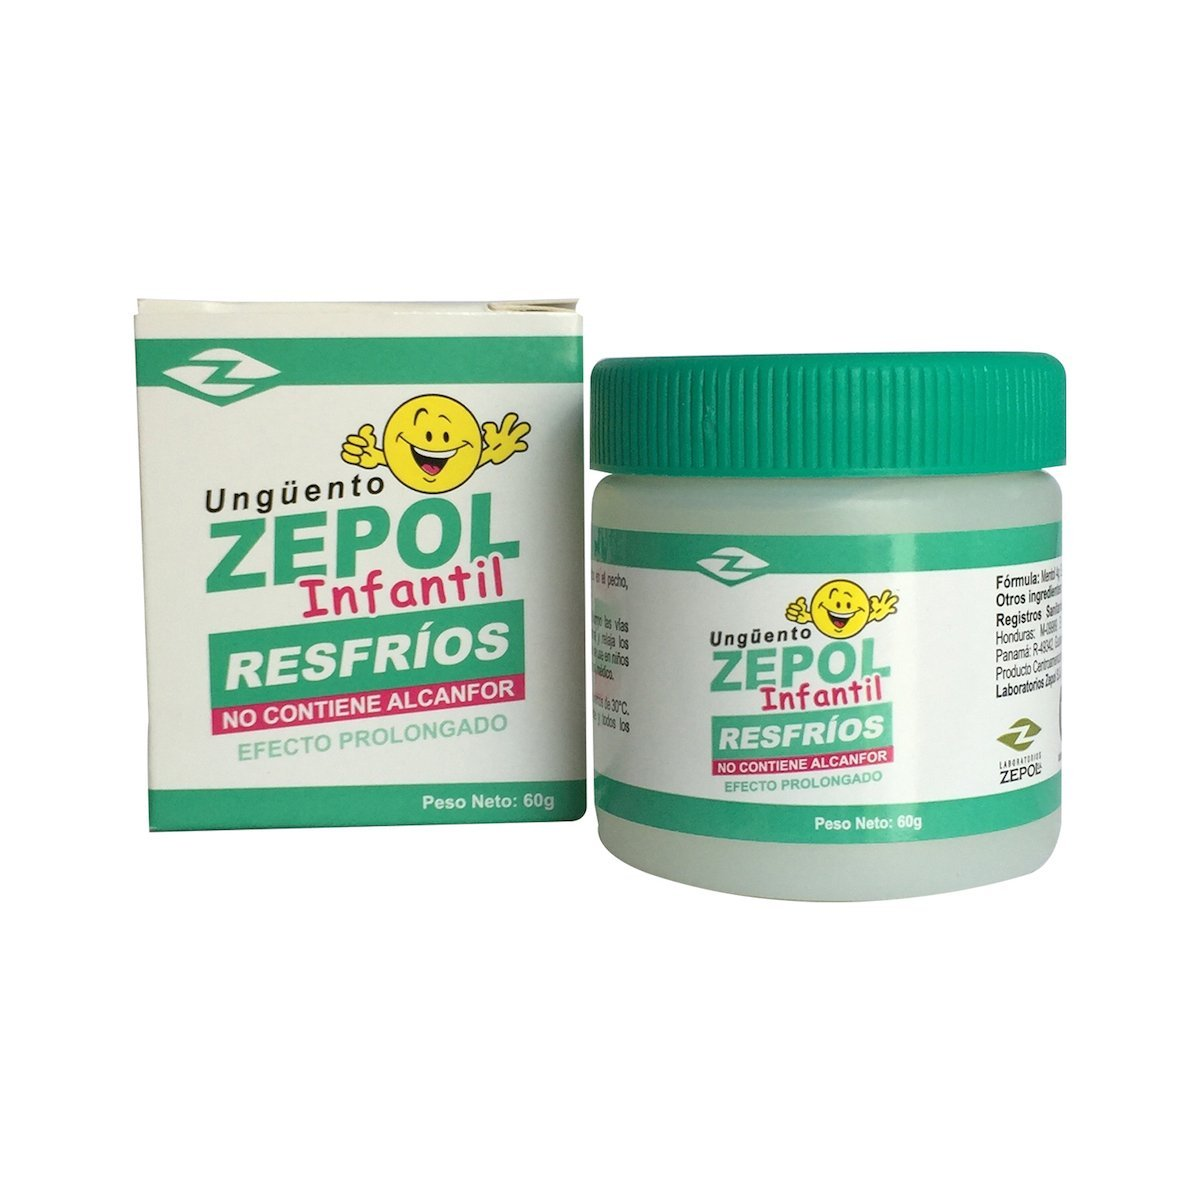 Zepol Ointment Children Colds - 2.1 Oz - 2 Pack